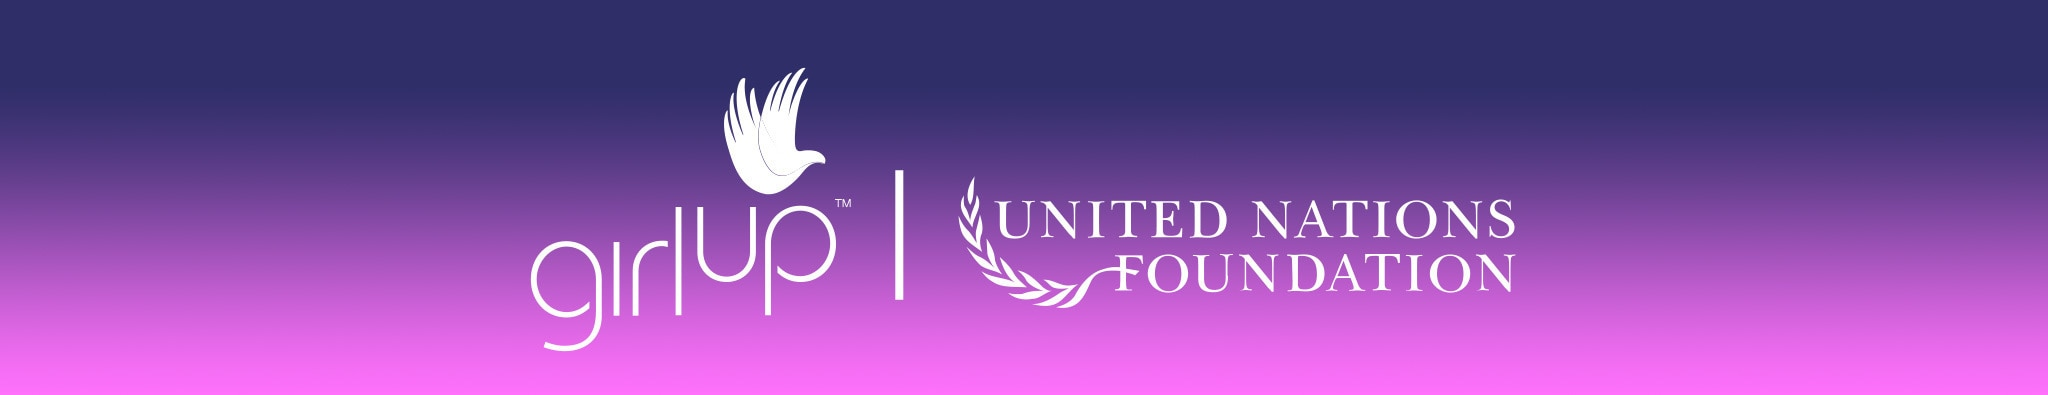 Girl Up - United Nations Foundation